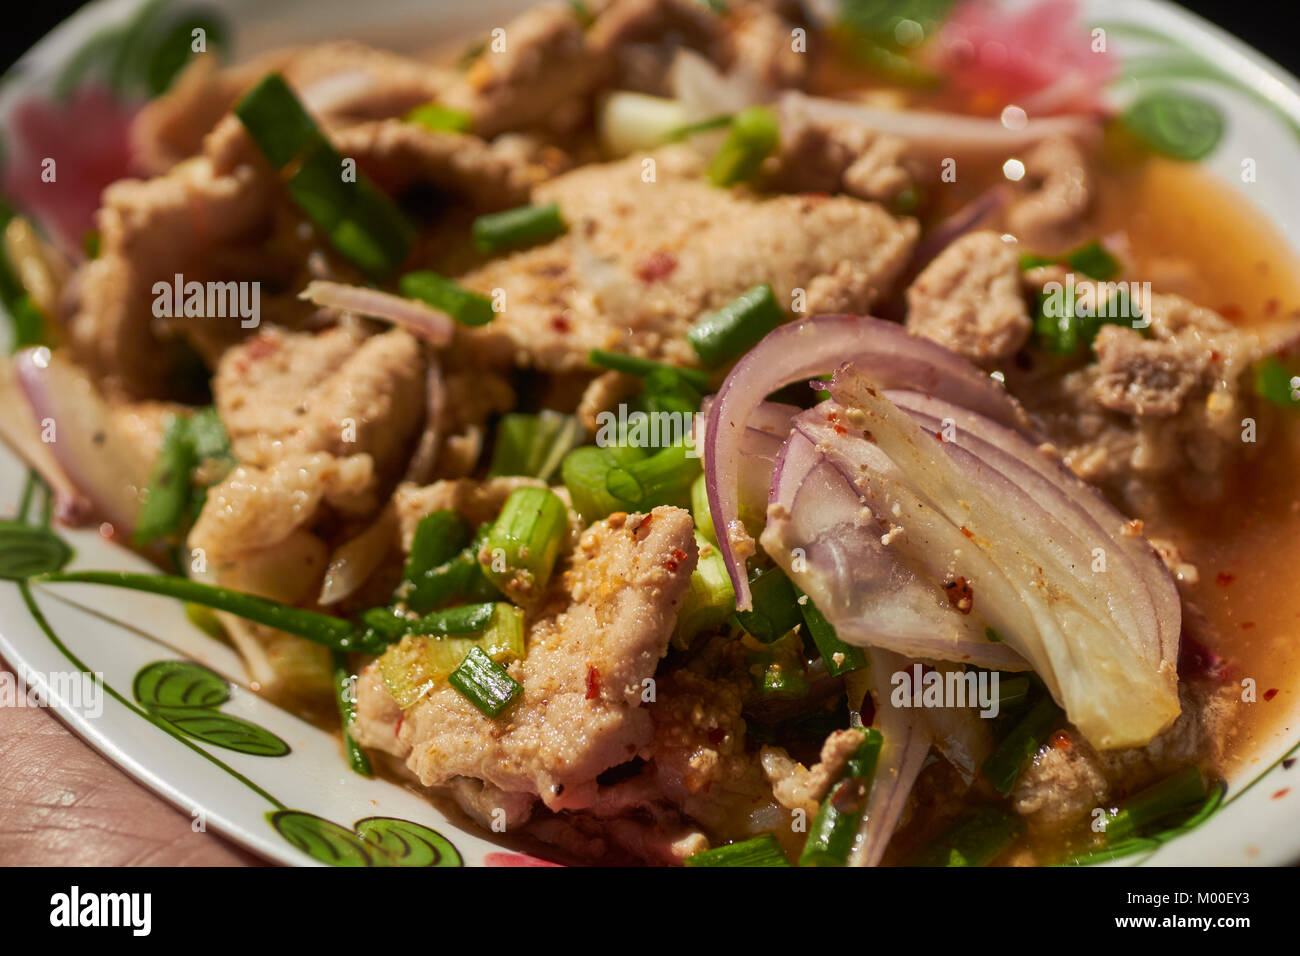 Stir fried chicken with basil leaves, a Thai Classic. - Stock Image